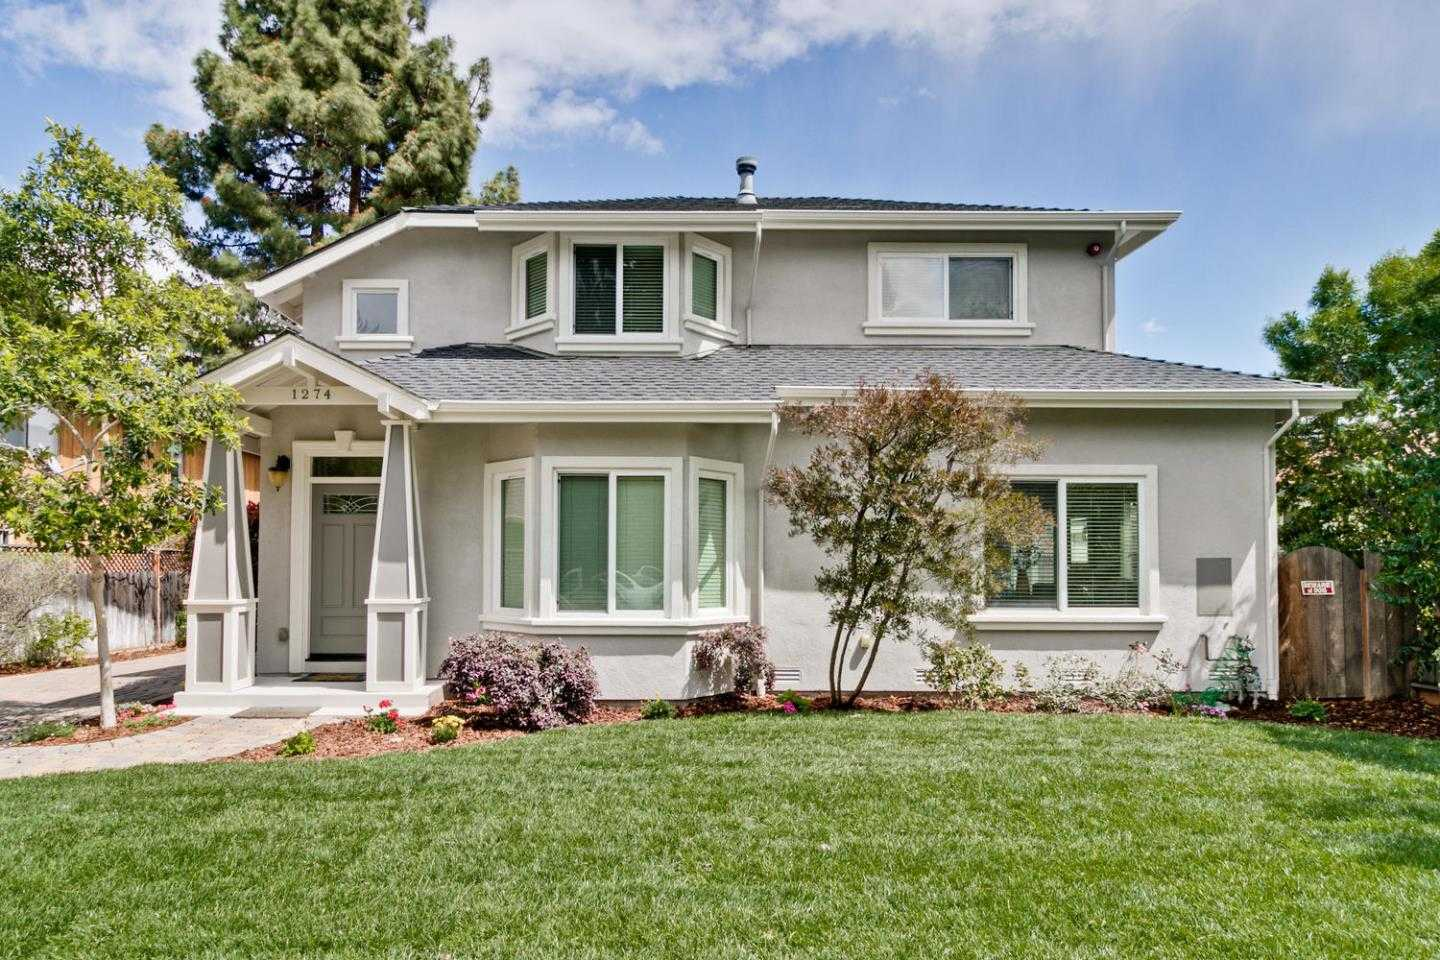 $1,788,000 - 4Br/3Ba -  for Sale in Sunnyvale